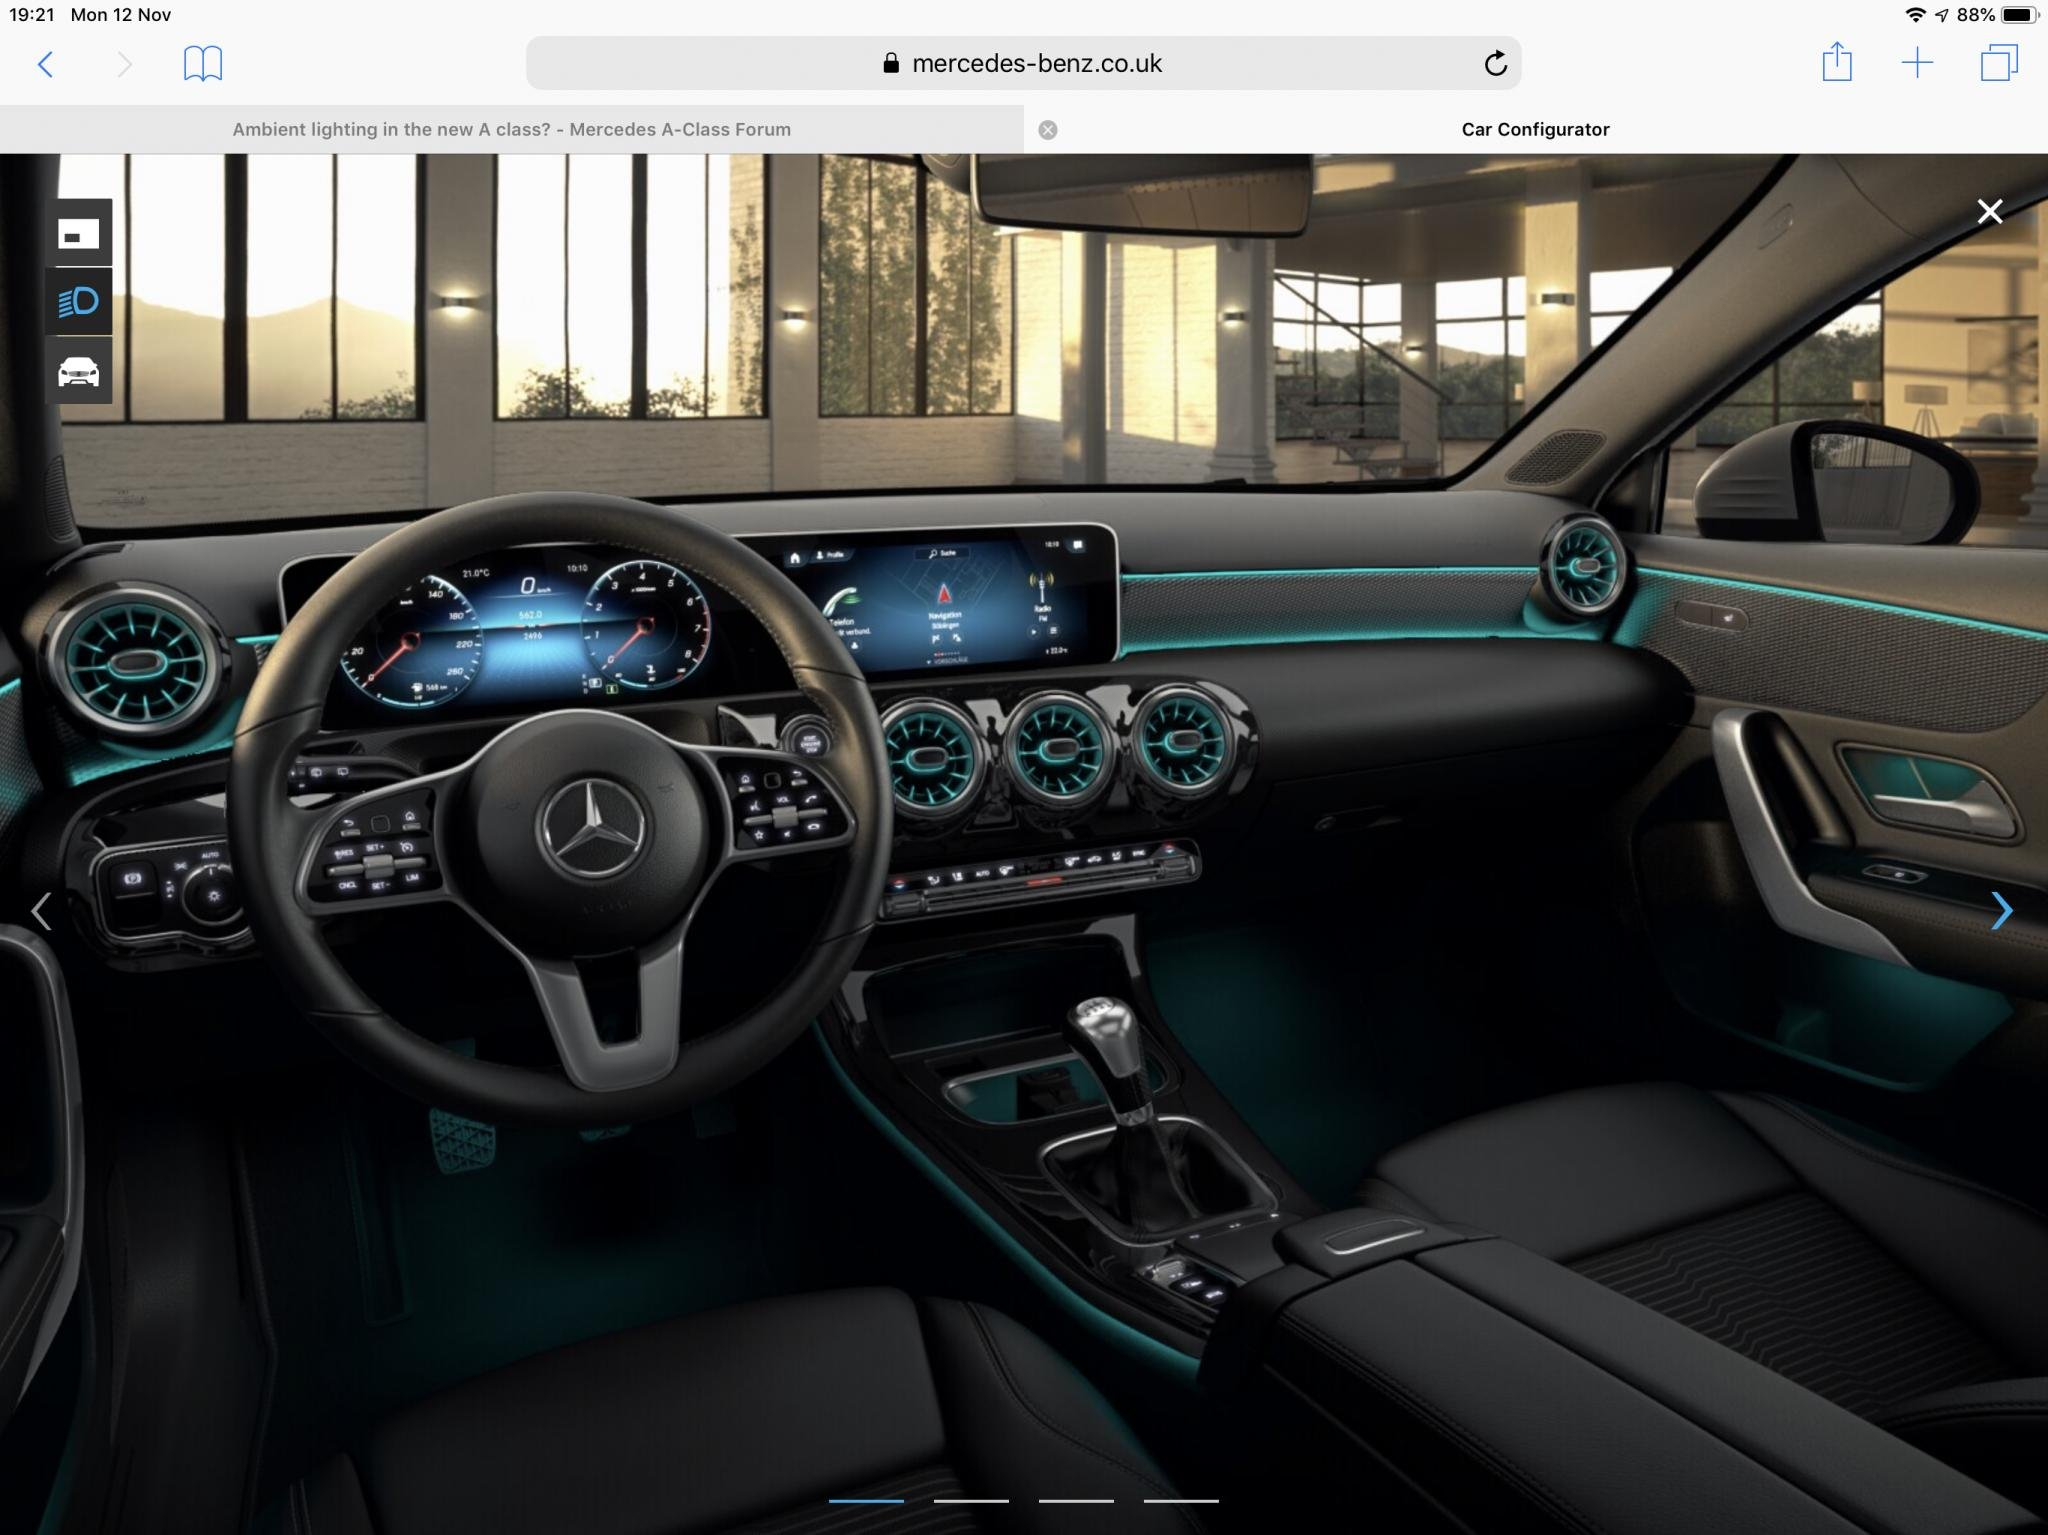 ambient lighting in the new a class